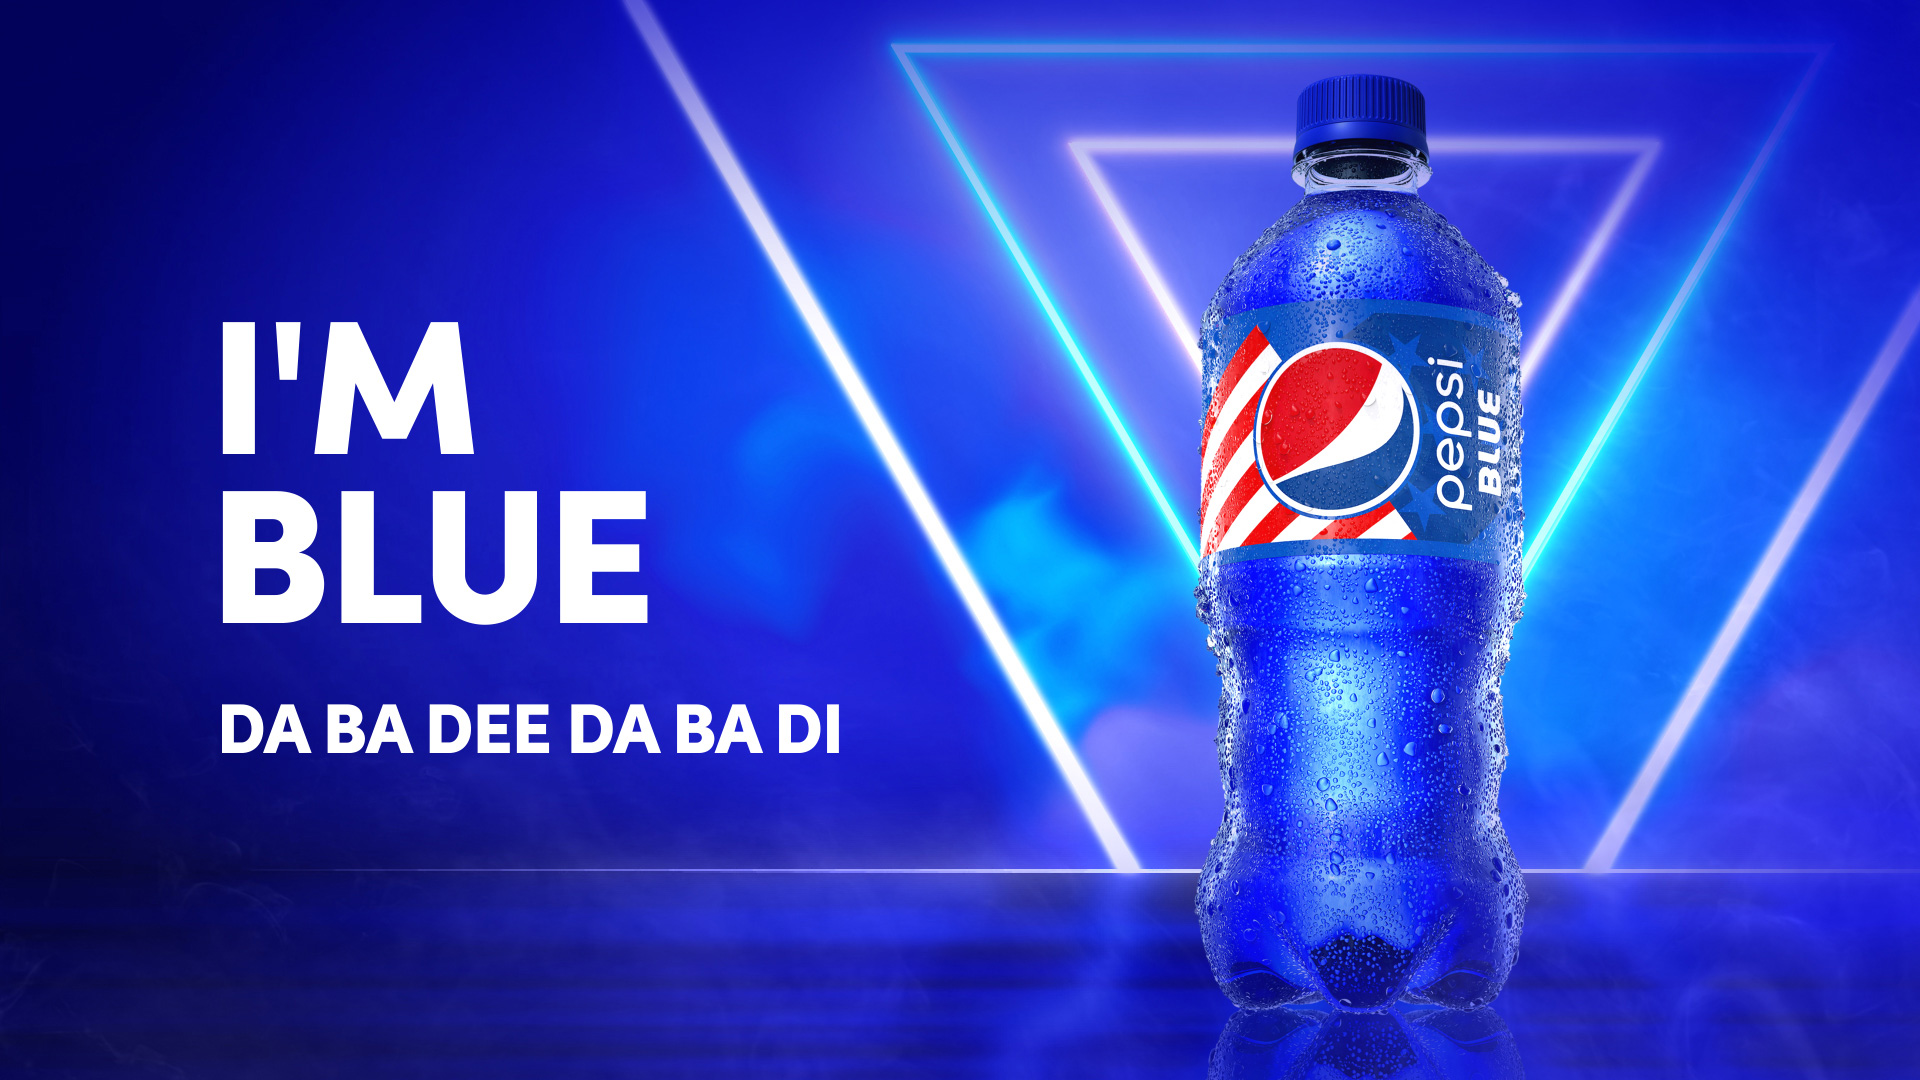 blue pepsi bottle with ad saying